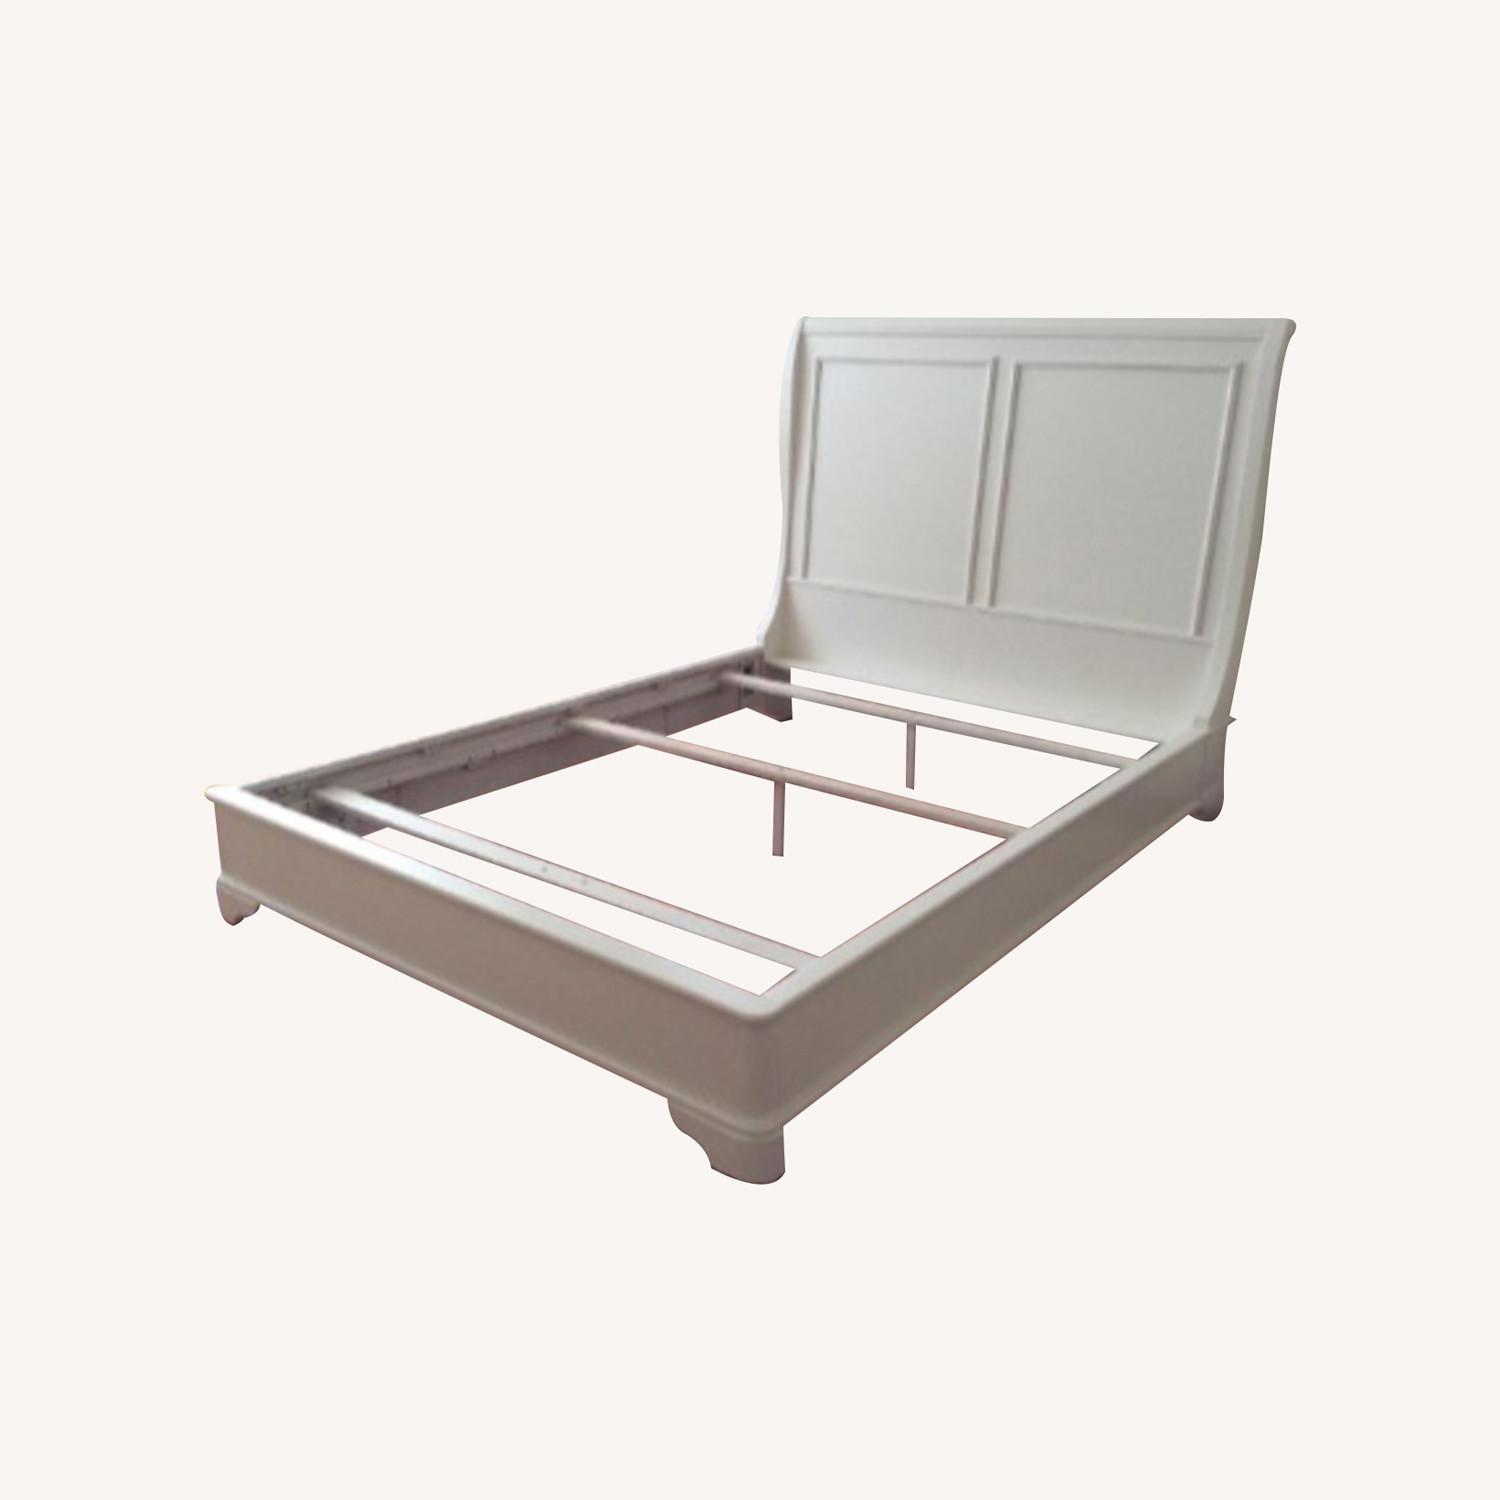 Macy's White Queen Sleigh Bed - image-0